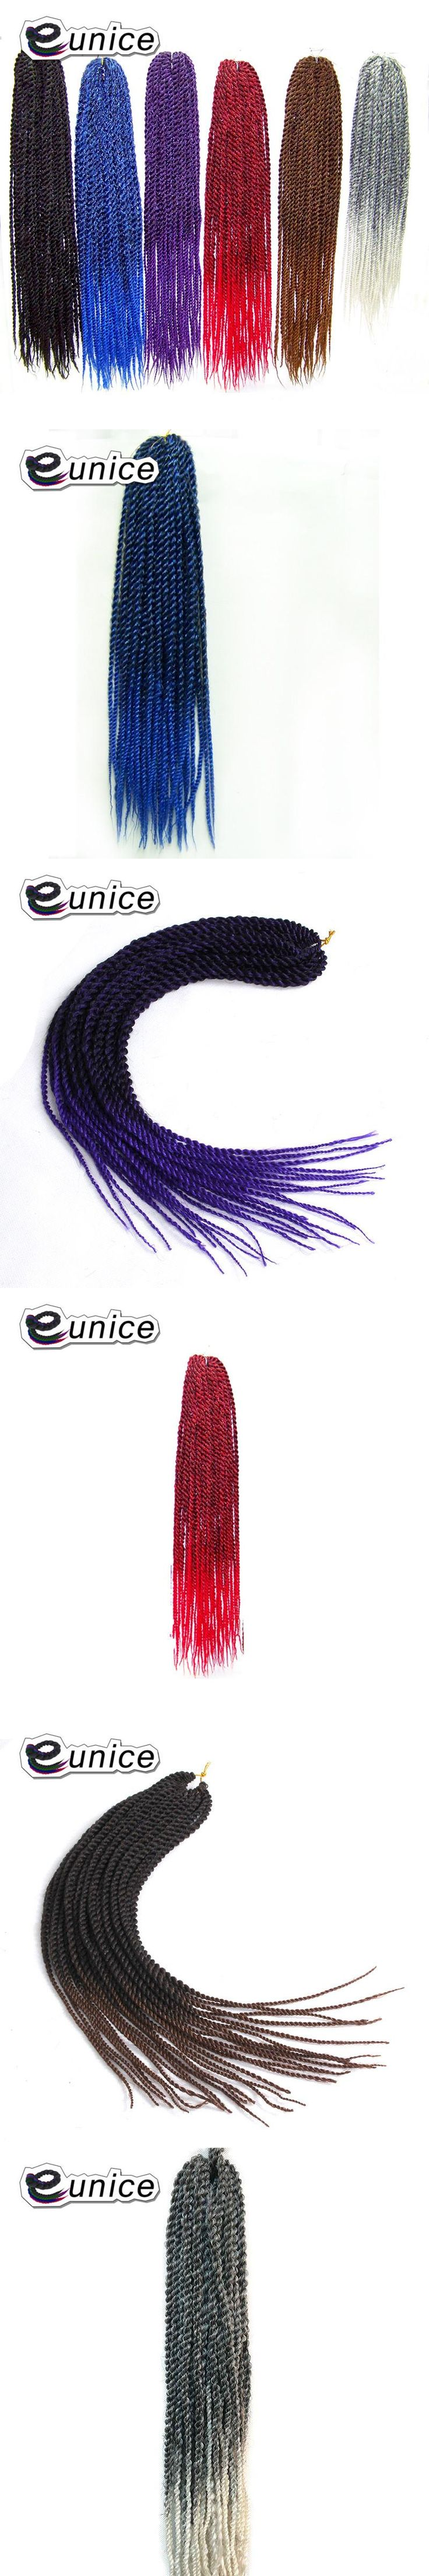 Eunice Products Pre Twist Crochet Hair Extensions 22Inch Ombre Senegalese Twist Hair Synthetic Braids T1B/#30 Colors 1-10Packs